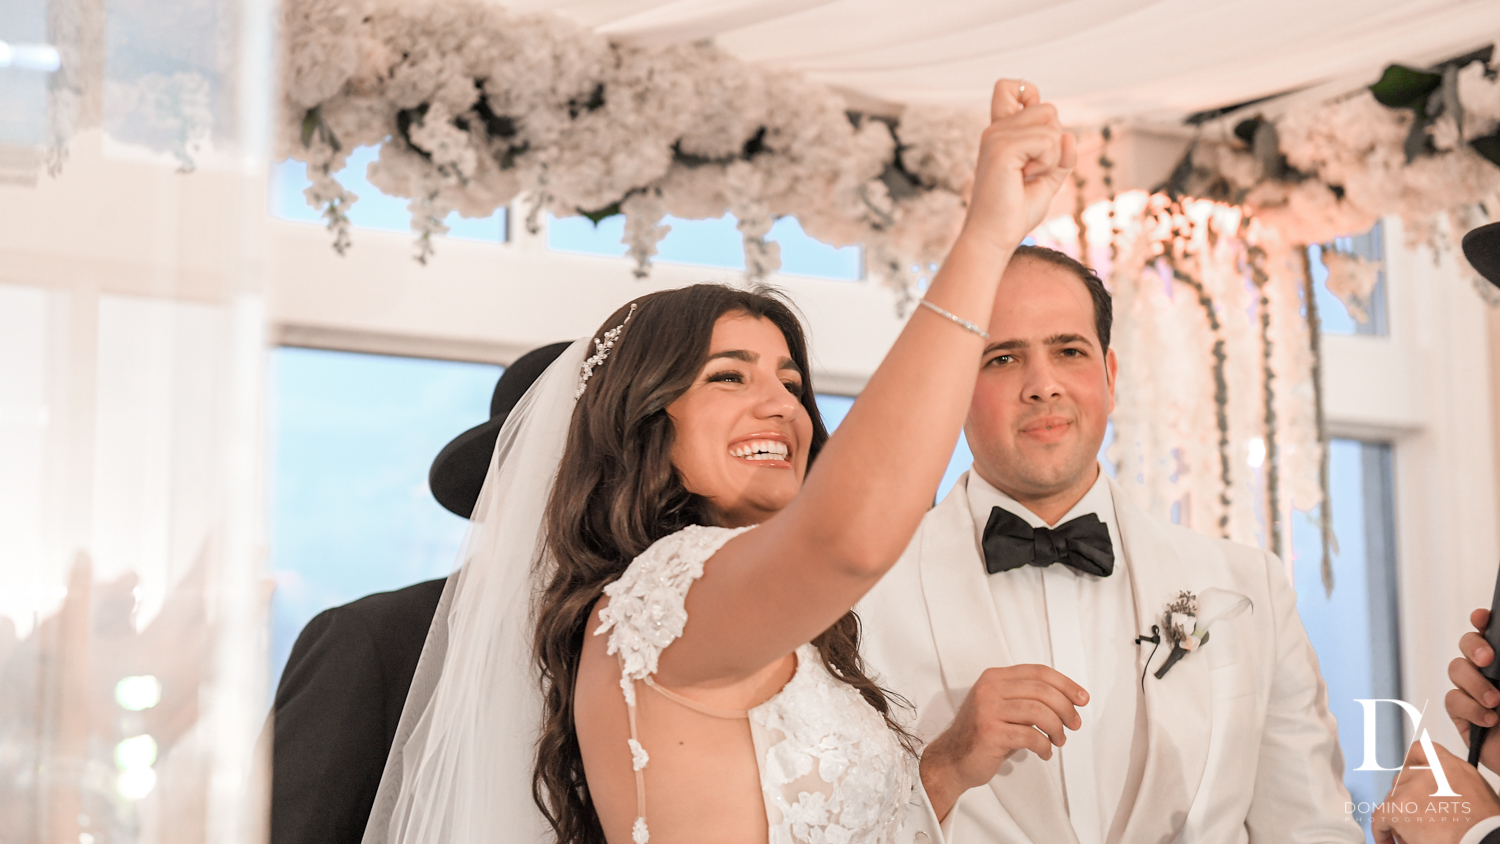 ring finger at ceremony at Elegant Classy Wedding at Trump Doral by Domino Arts Photography